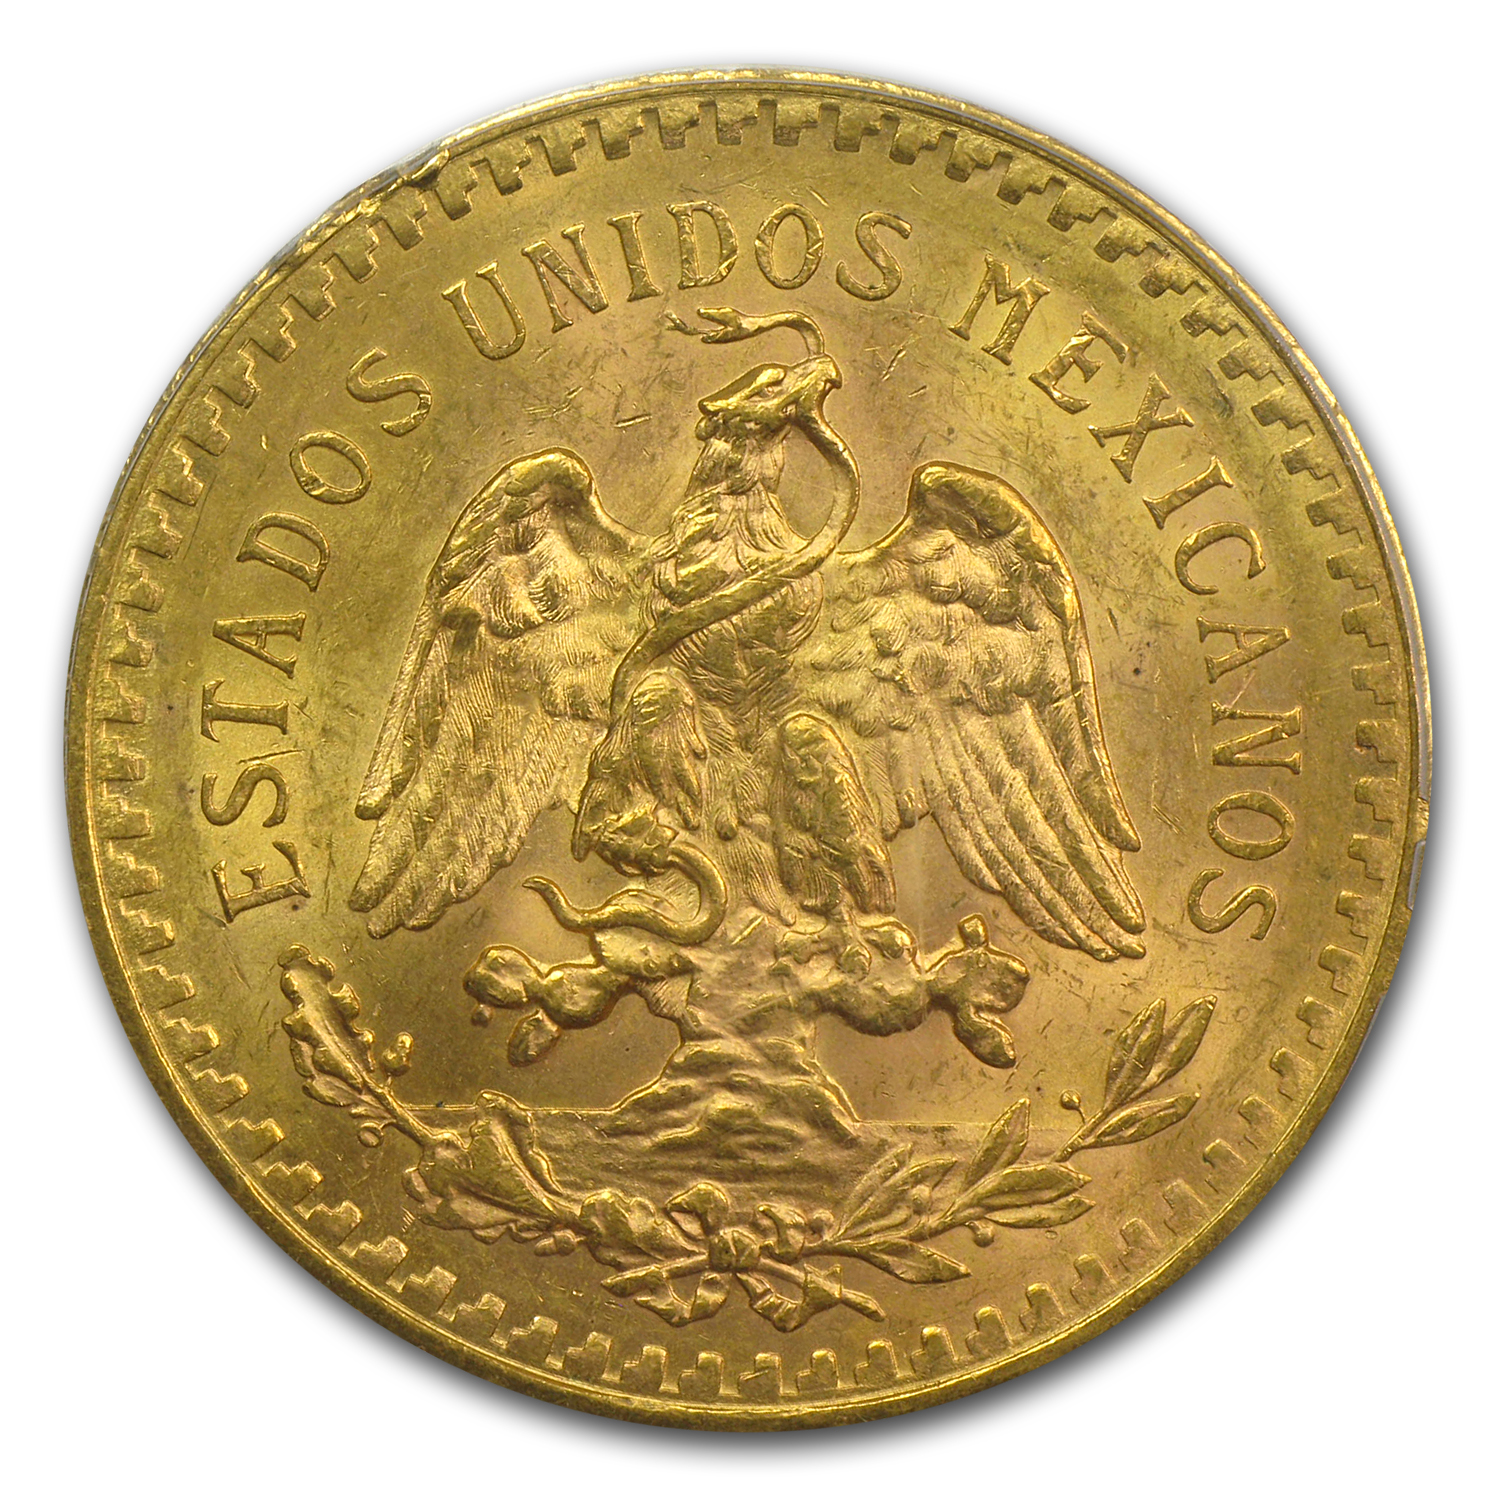 Mexico 1923 50 Pesos Gold Coin - MS-63 PCGS